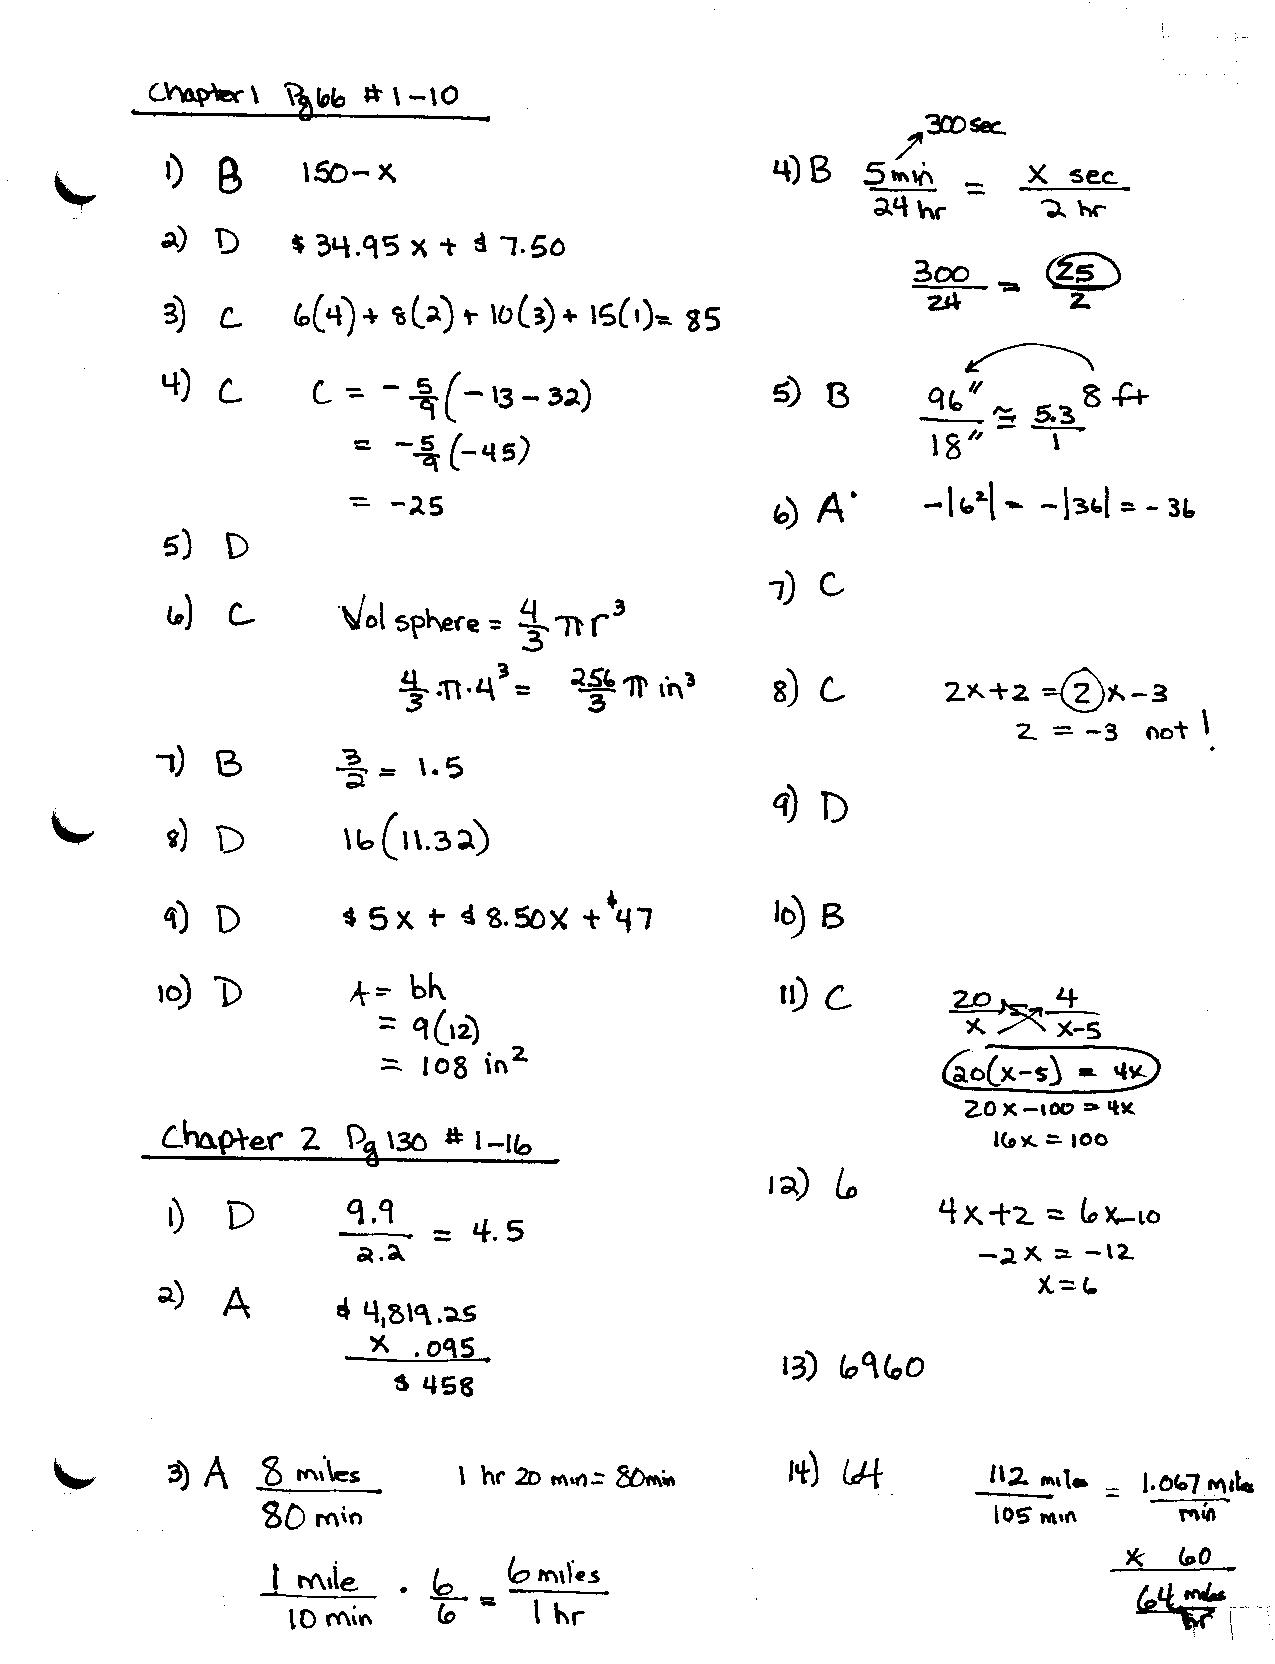 Holt Mcdougal Algebra 1 Answers Key